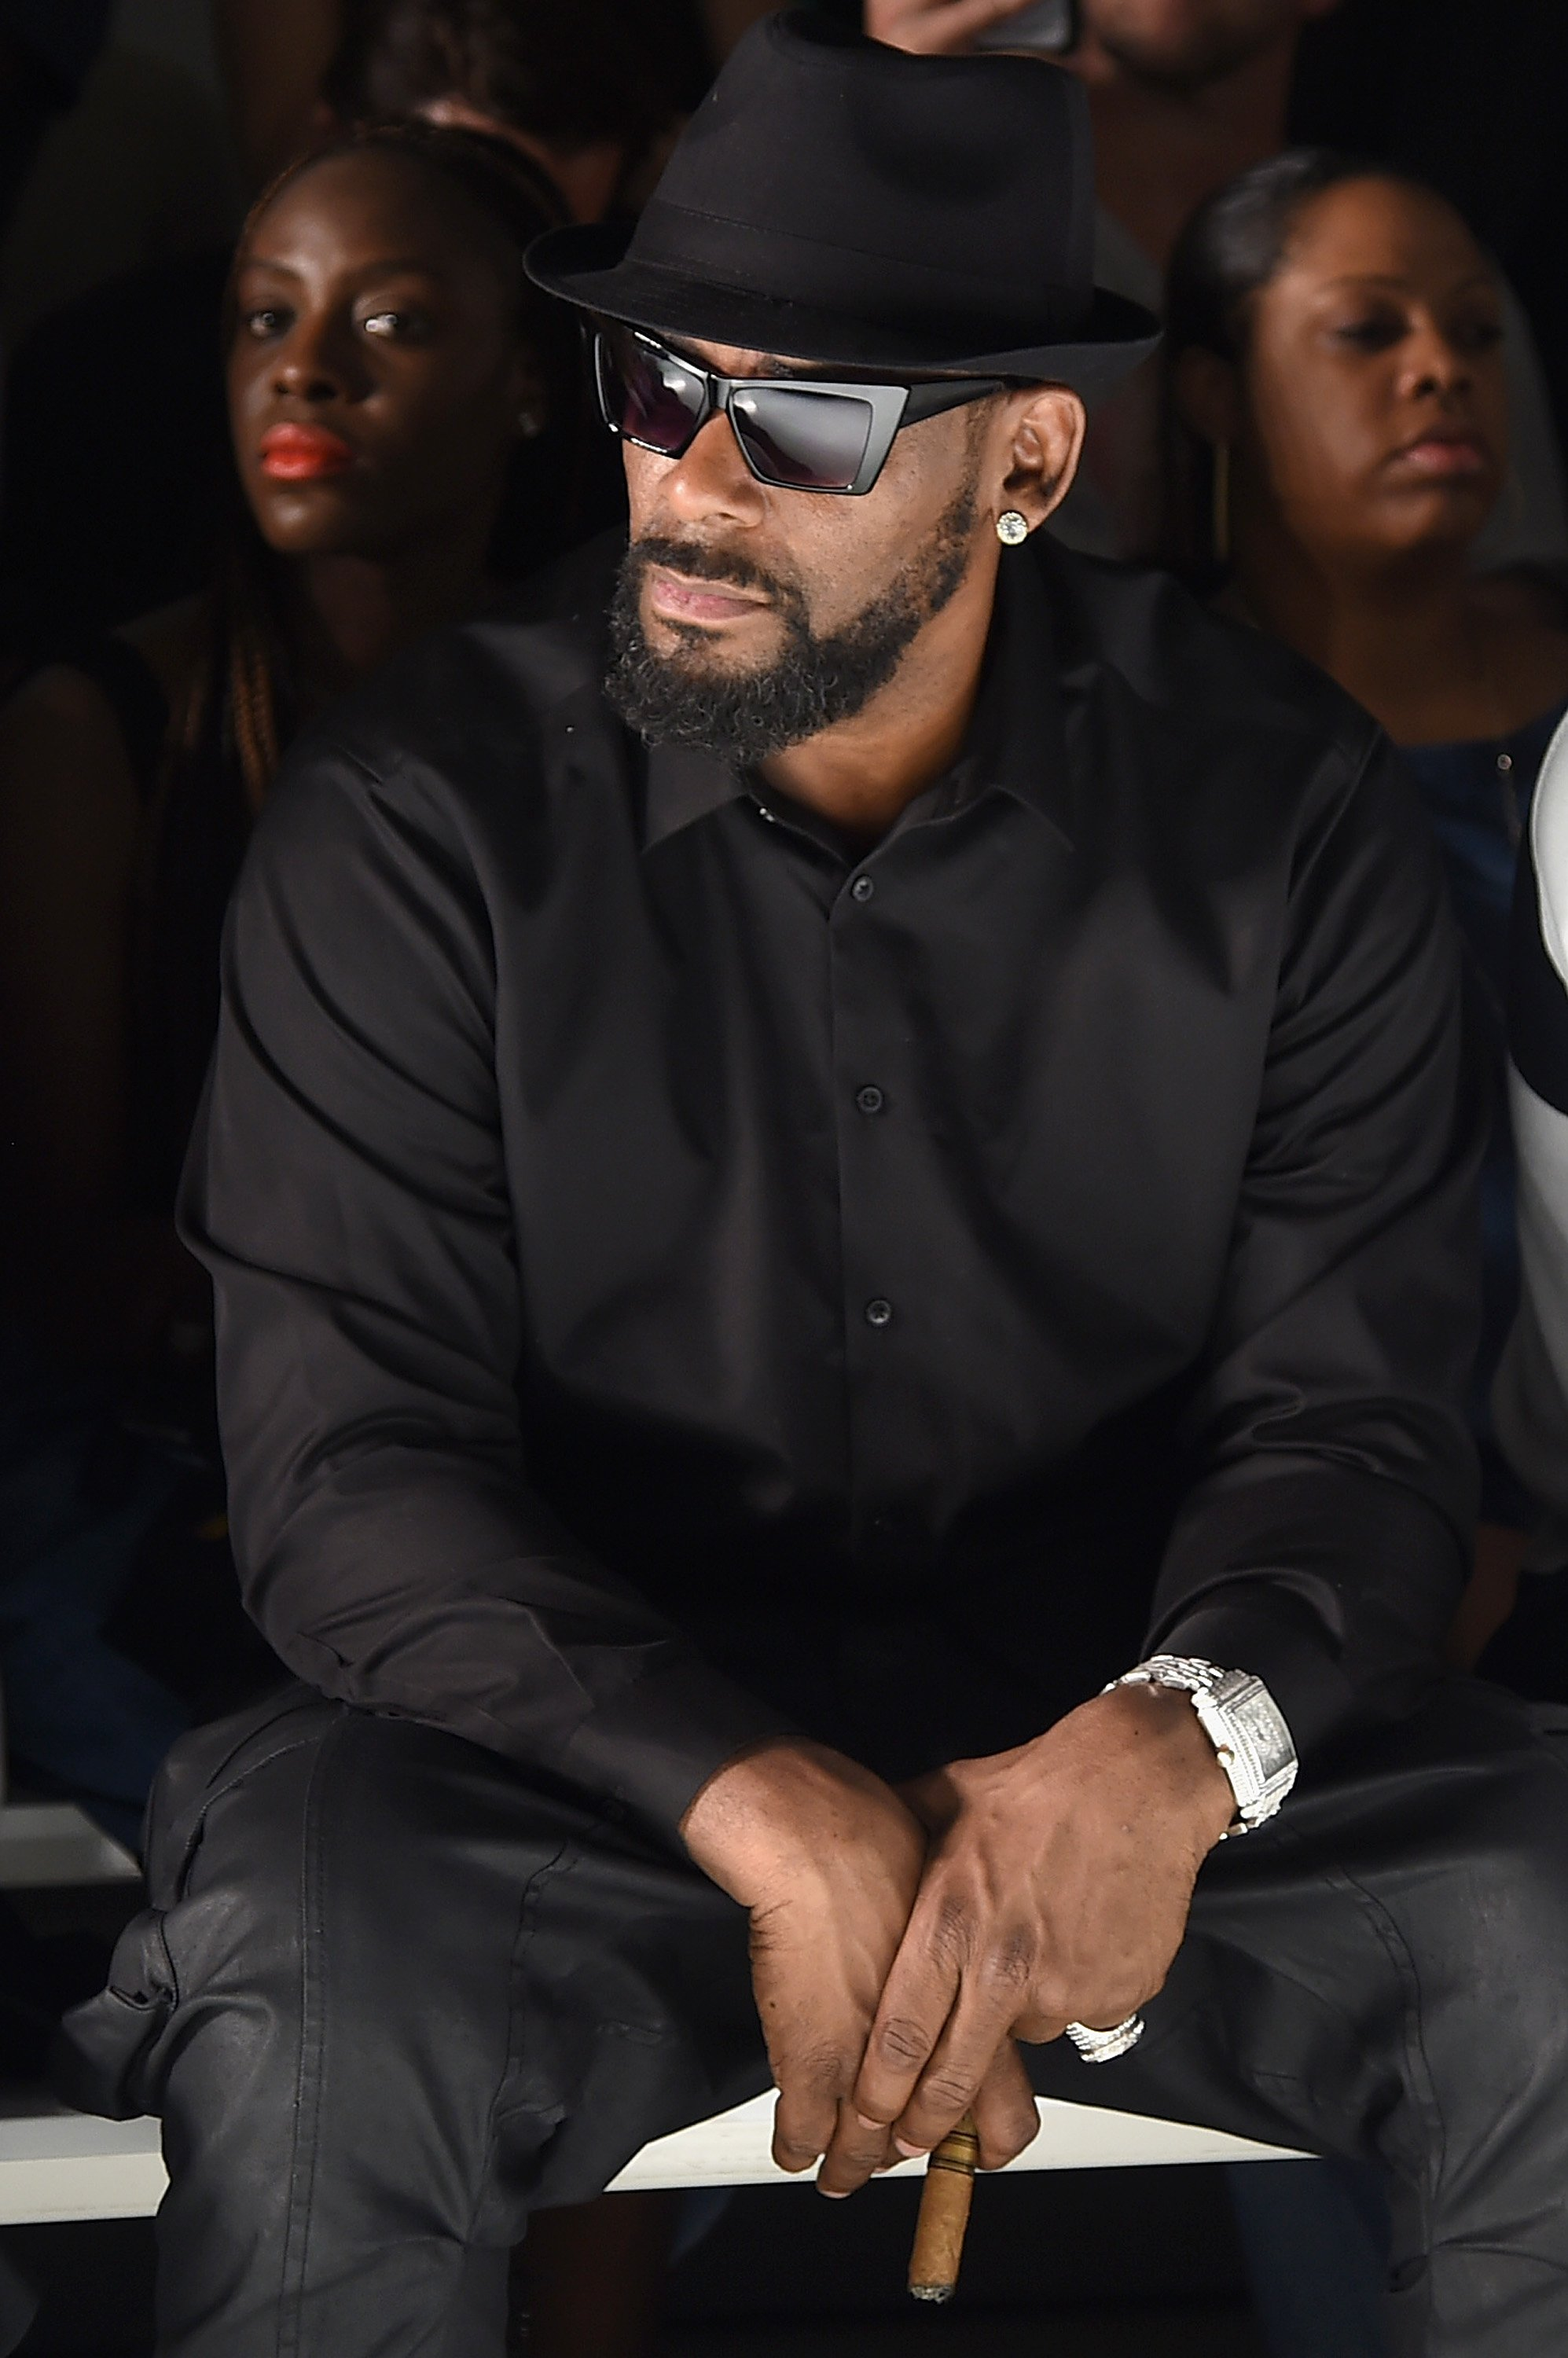 R. Kelly attends the Ovadia & Sons fashion show in 2016. | Photo: GettyImages/Global Images of Ukraine